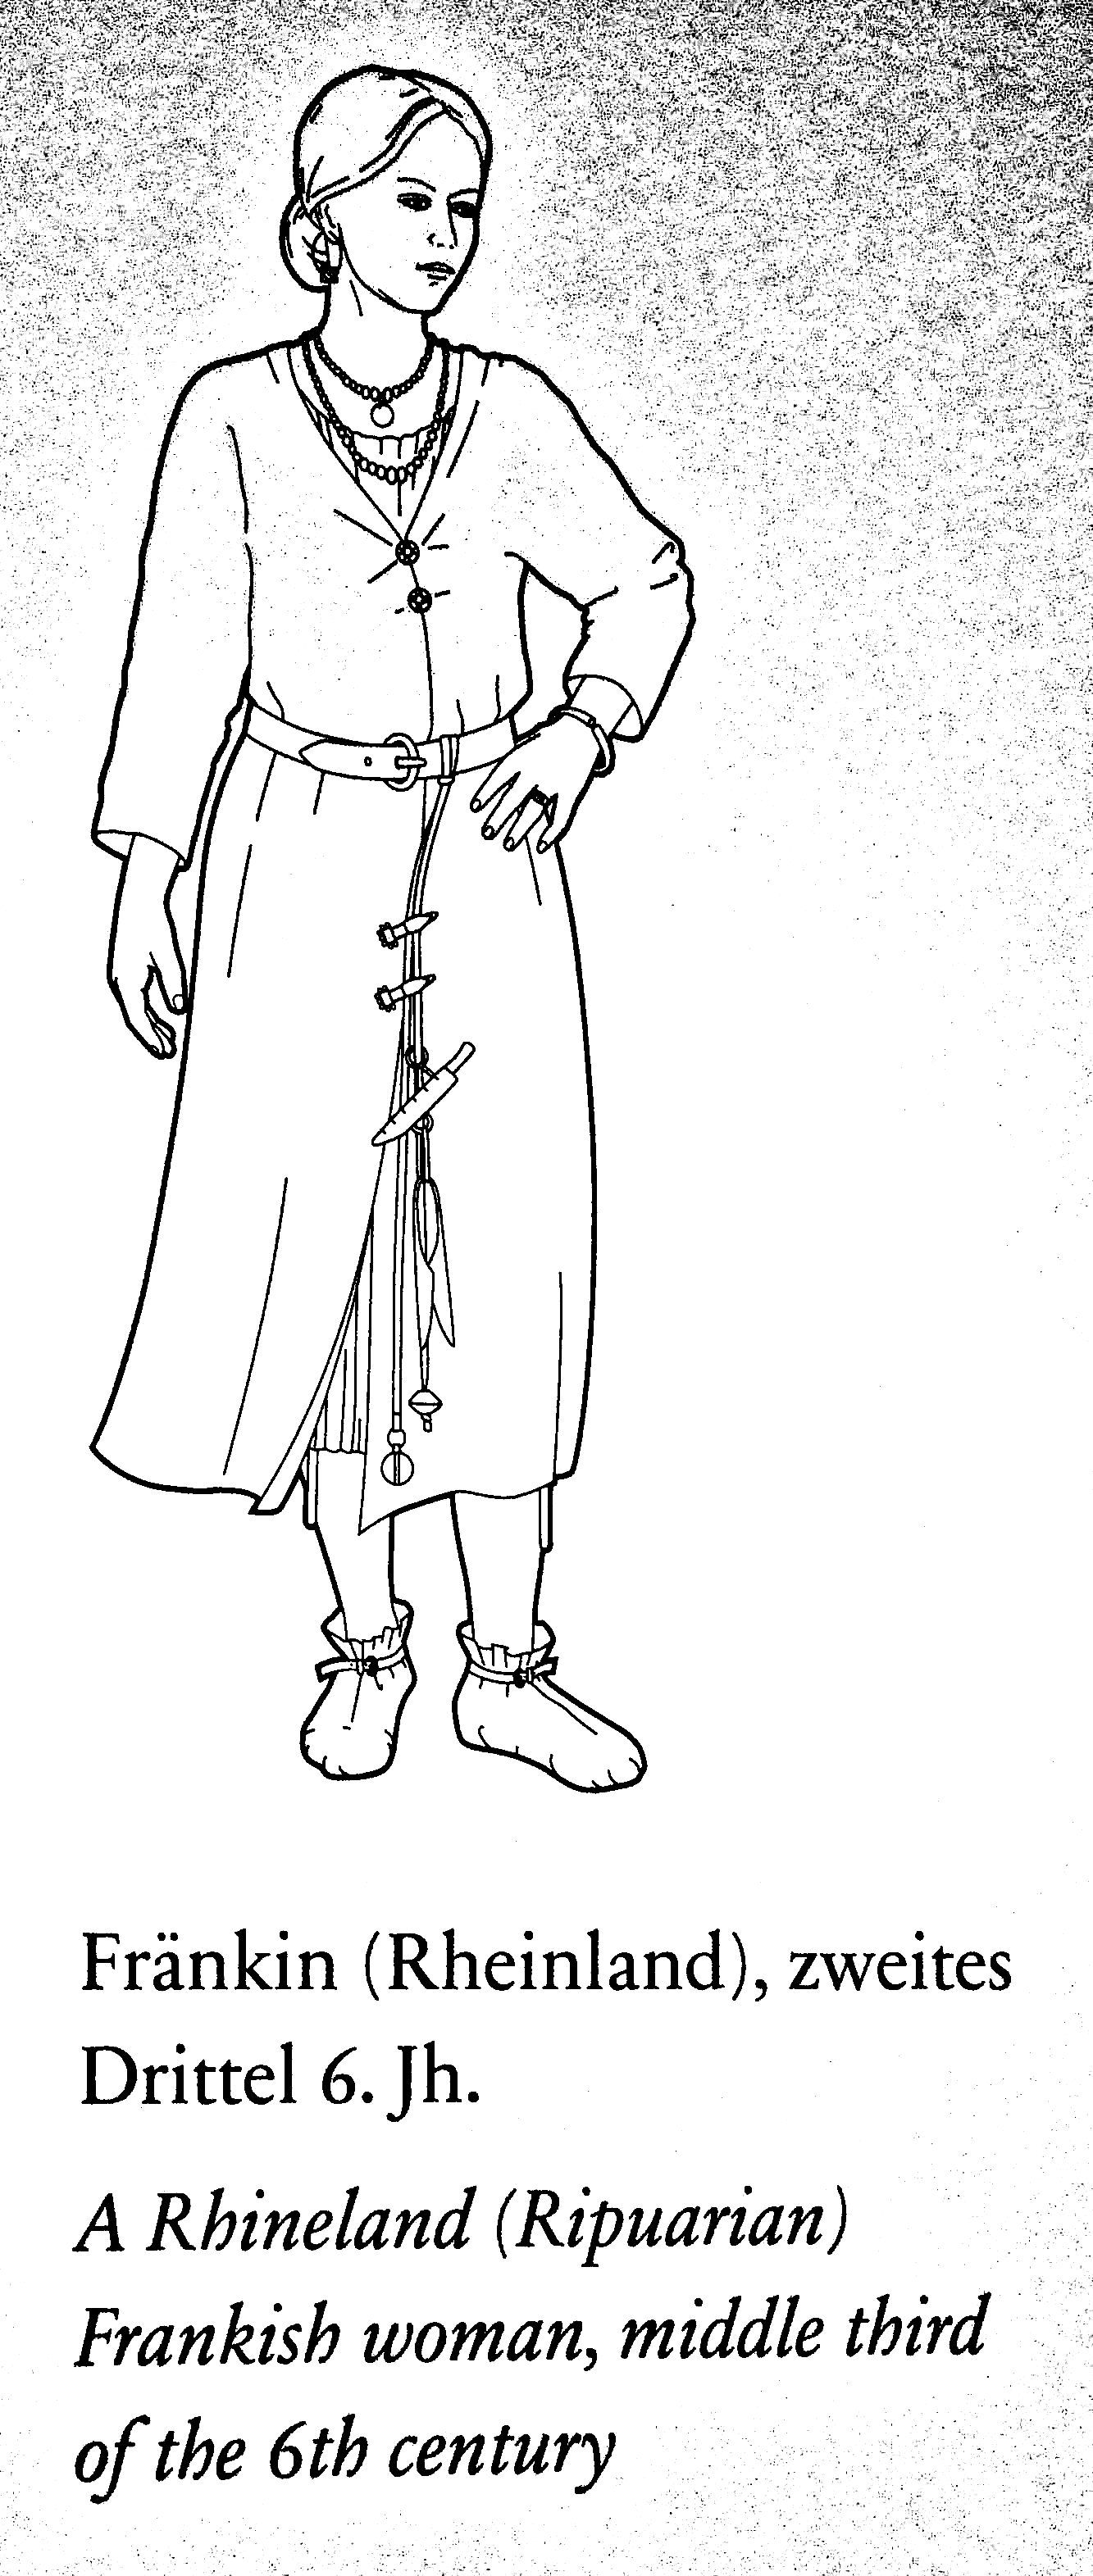 A Rhineland (Ripuarian) Frankish woman, middle third of